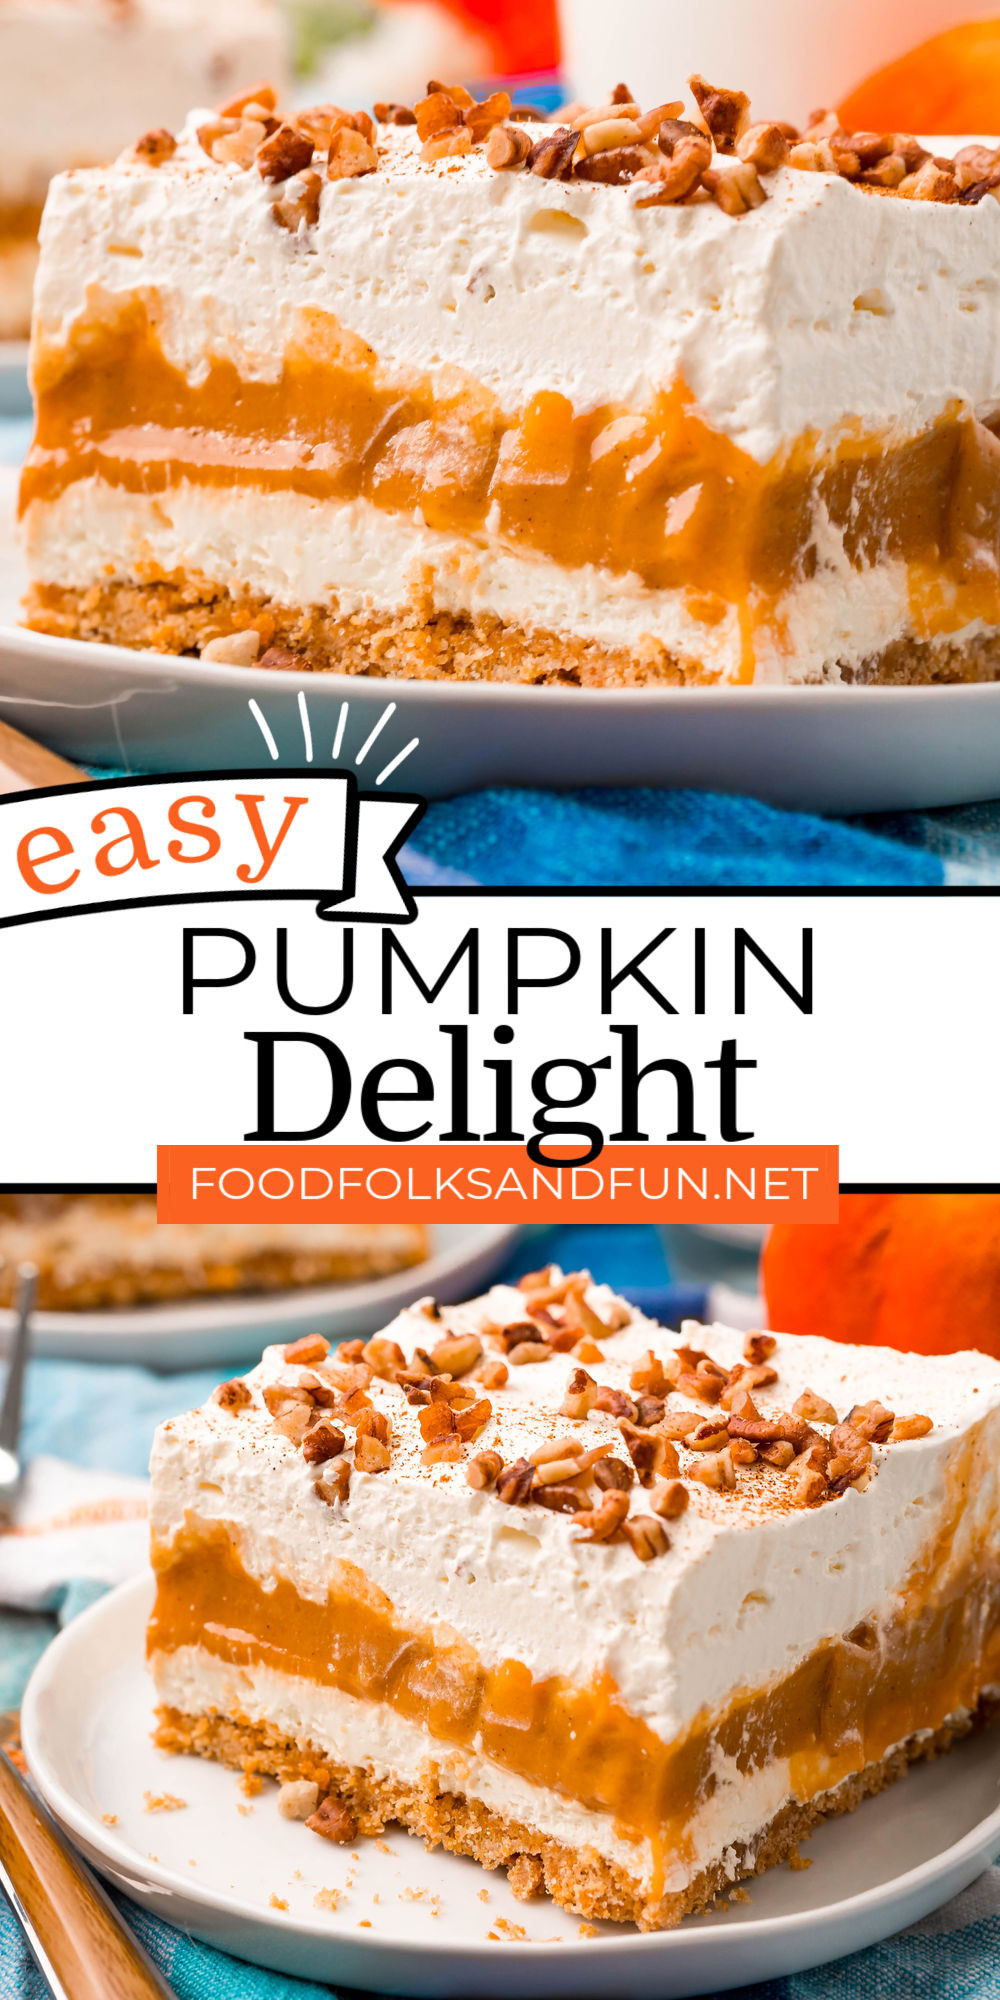 Pumpkin Delight is a layered fall dessert that is easy to make and calls for just eight ingredients! It has four distinct layers: graham cracker, cream cheese, pumpkin pudding, and whipped cream. via @foodfolksandfun